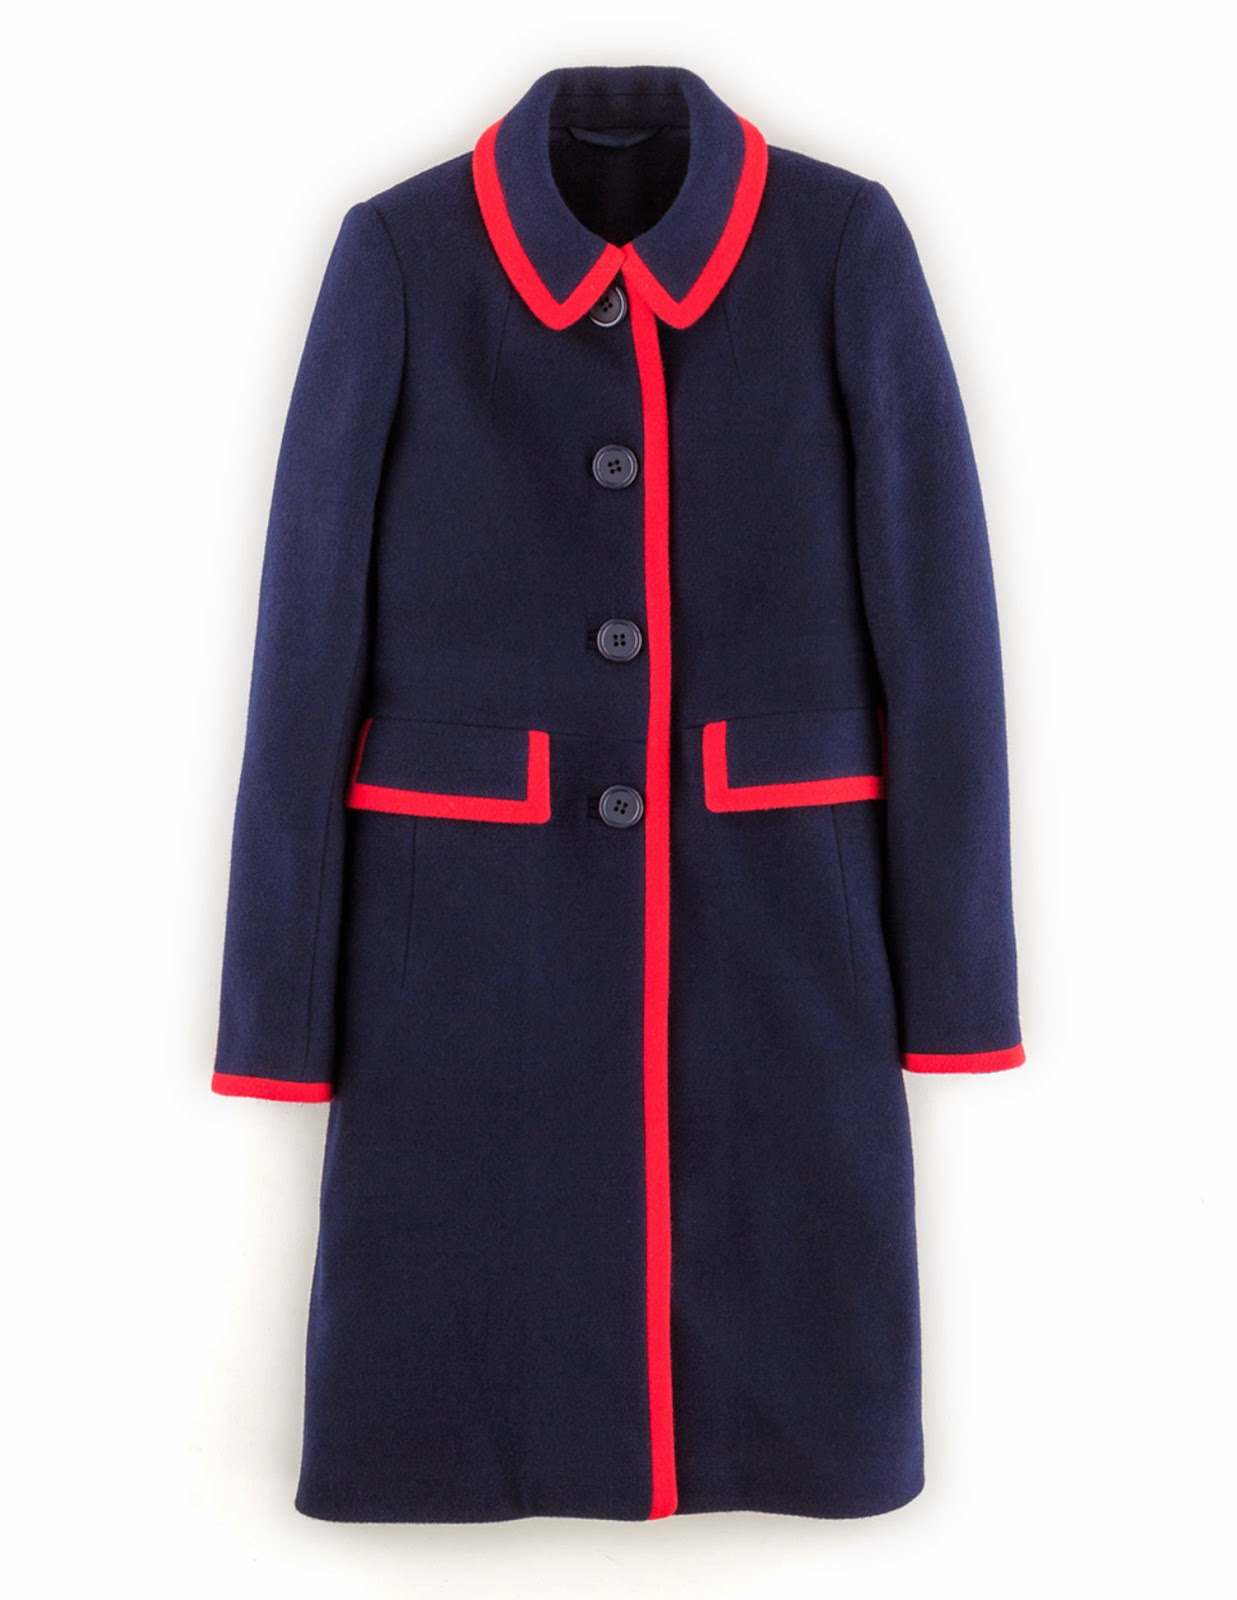 http://www.boden.co.uk/en-GB/Womens-Coats-Jackets/WE460-NAV/Womens-Navy-Red-Kate-Coat.html